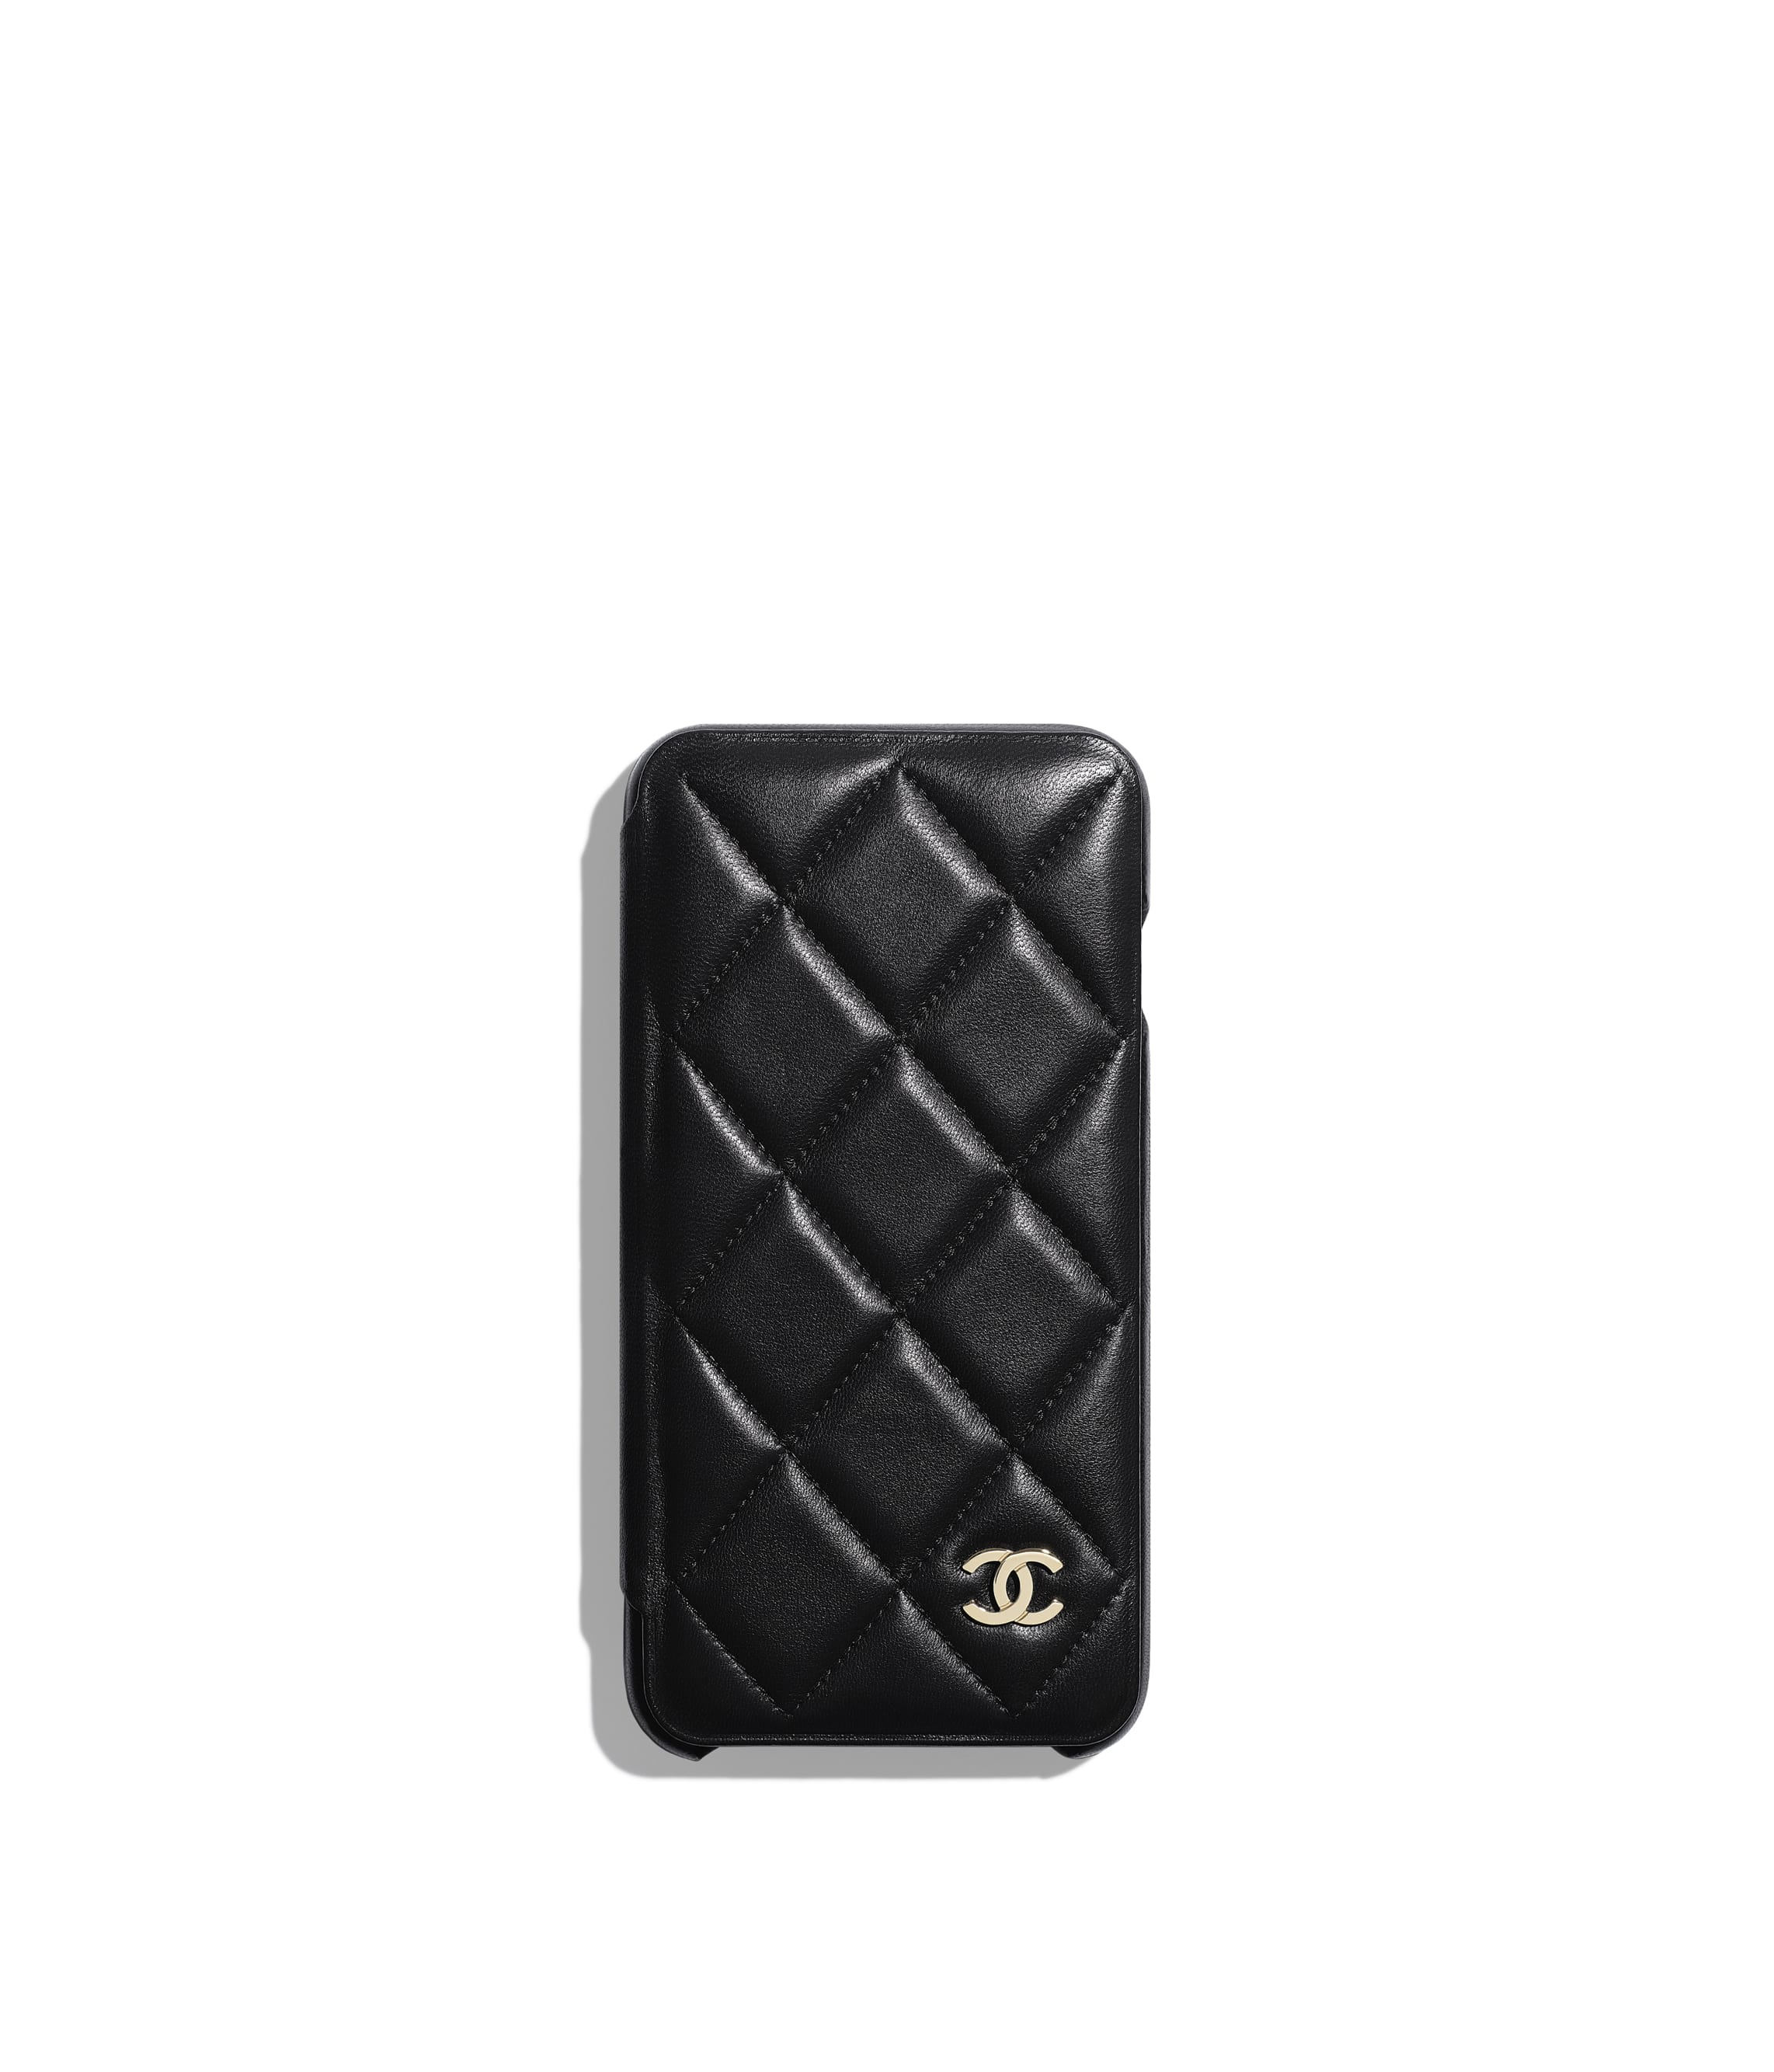 free shipping b3b1f 05a08 Tech Cases - Small Leather Goods - CHANEL